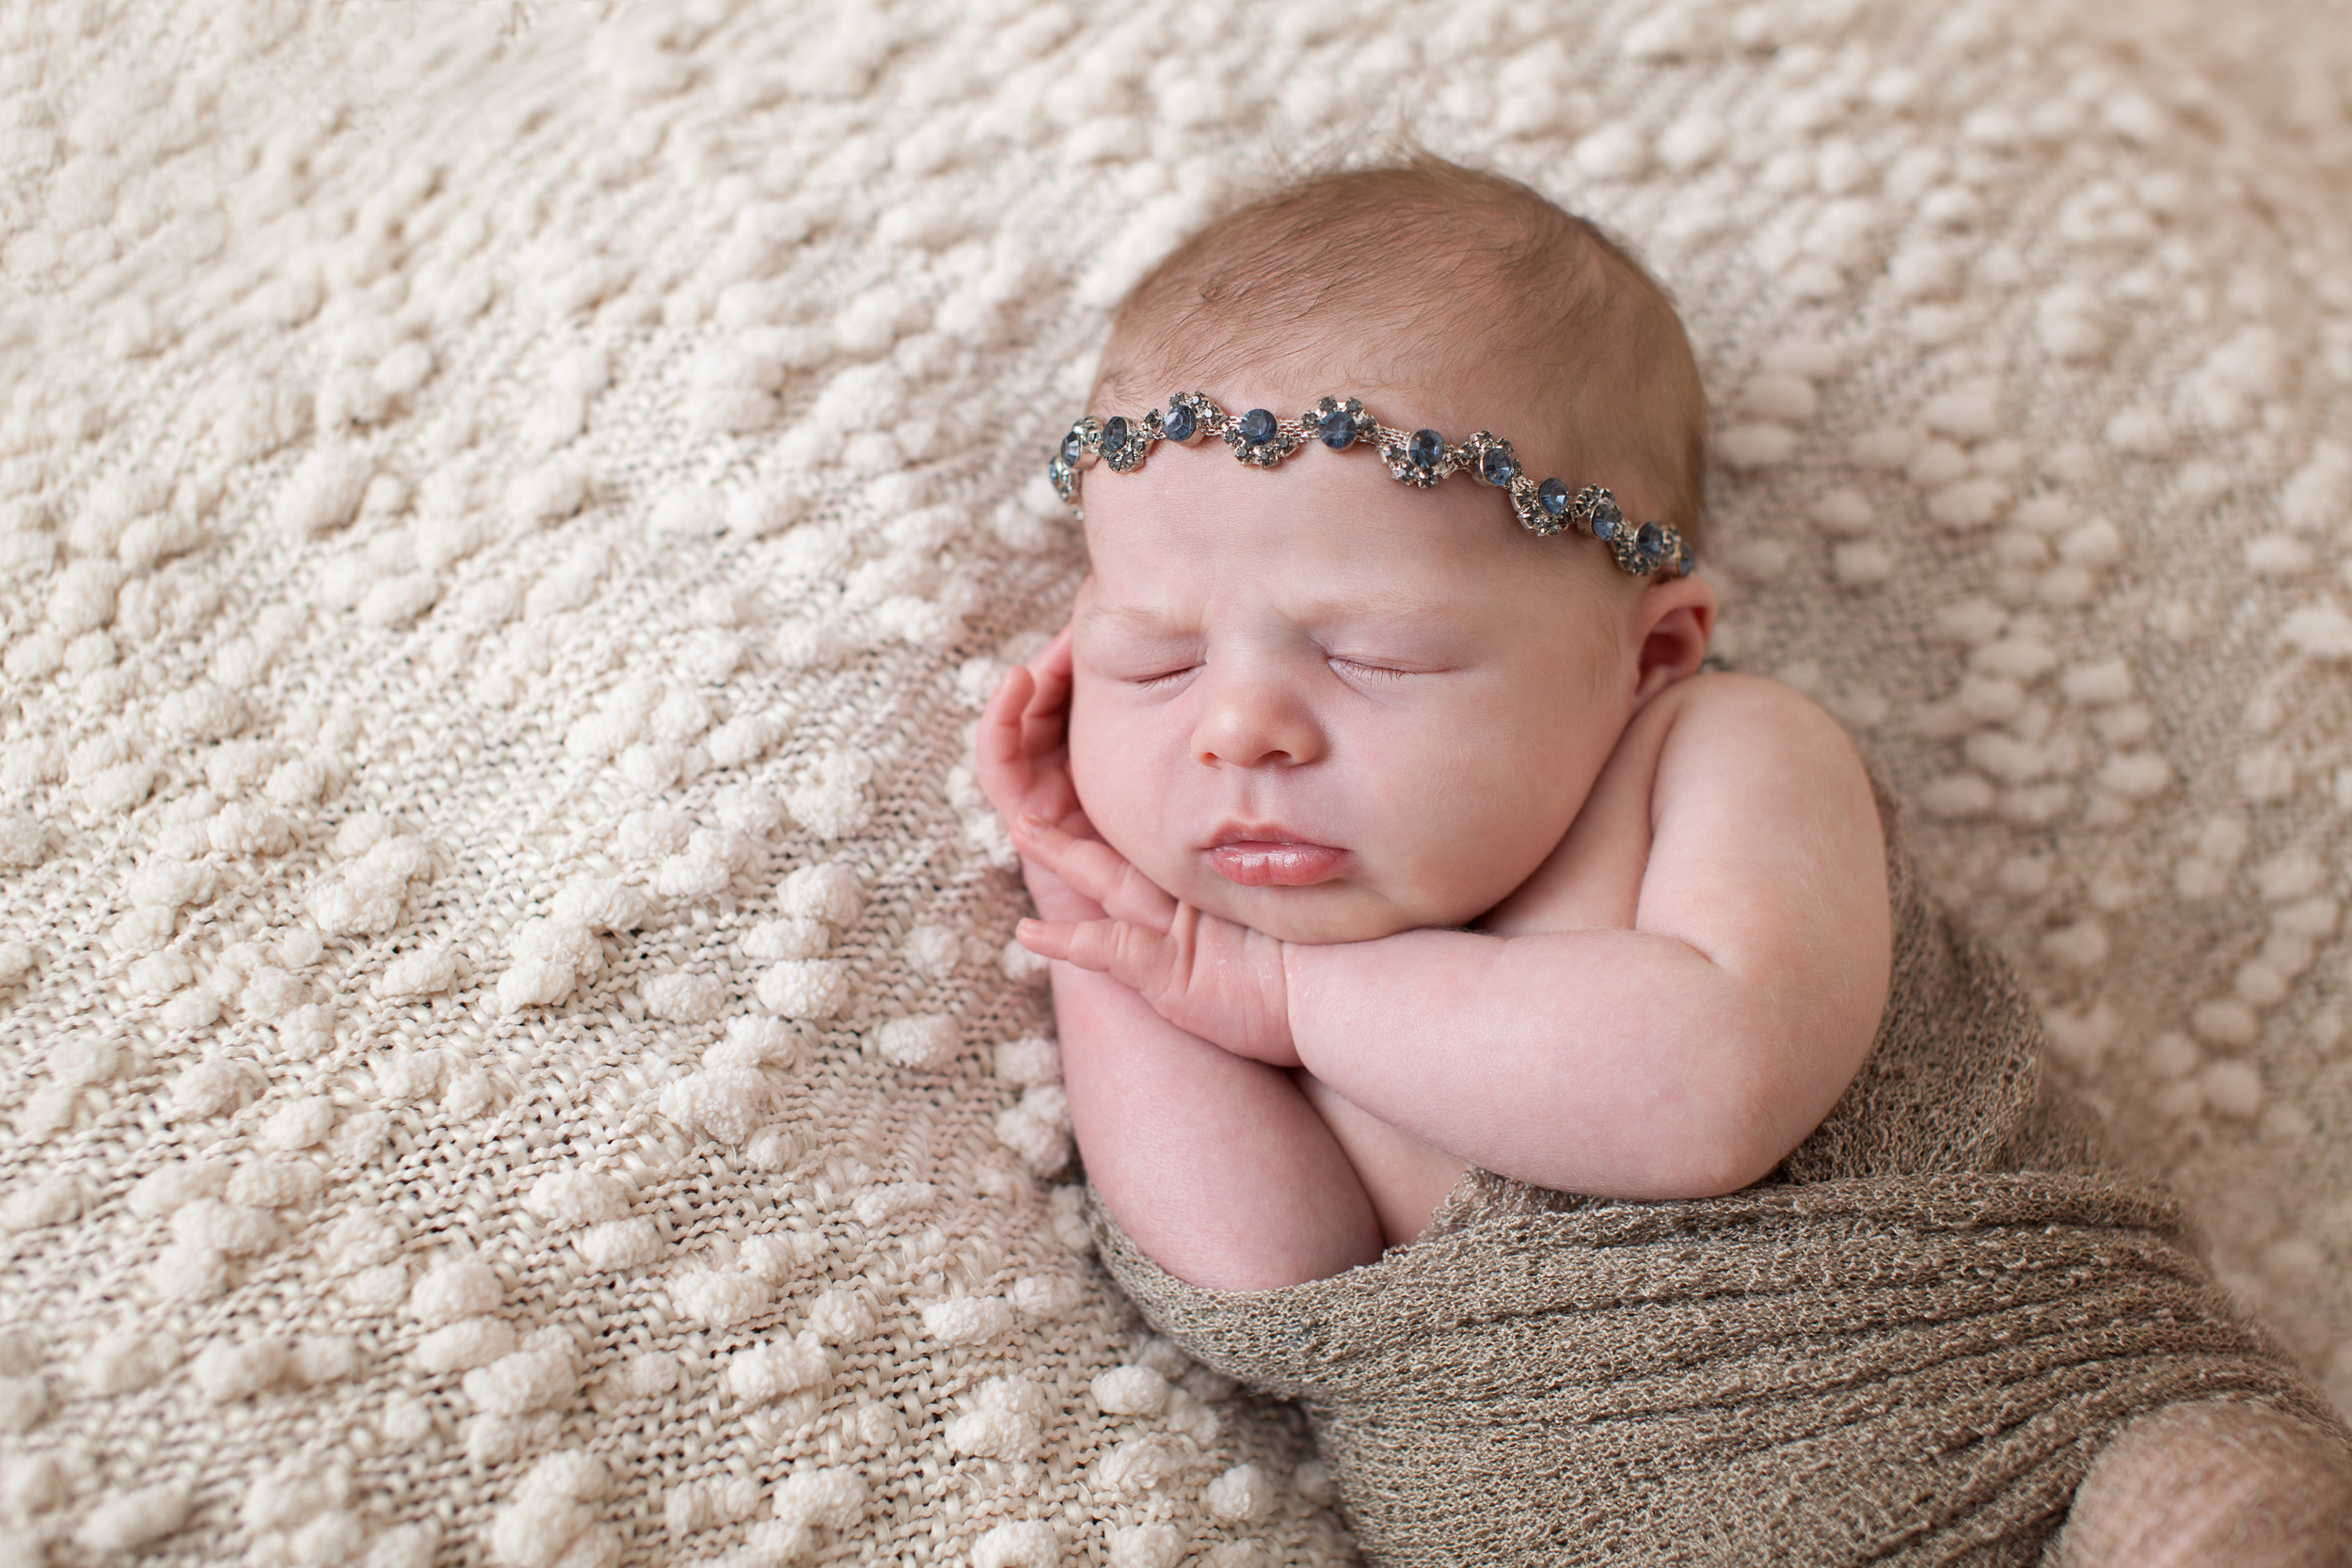 Columbus, Ohio photographer, Professional Portrait Studio, newborn photography. Infant in wrap with jewel tieback.